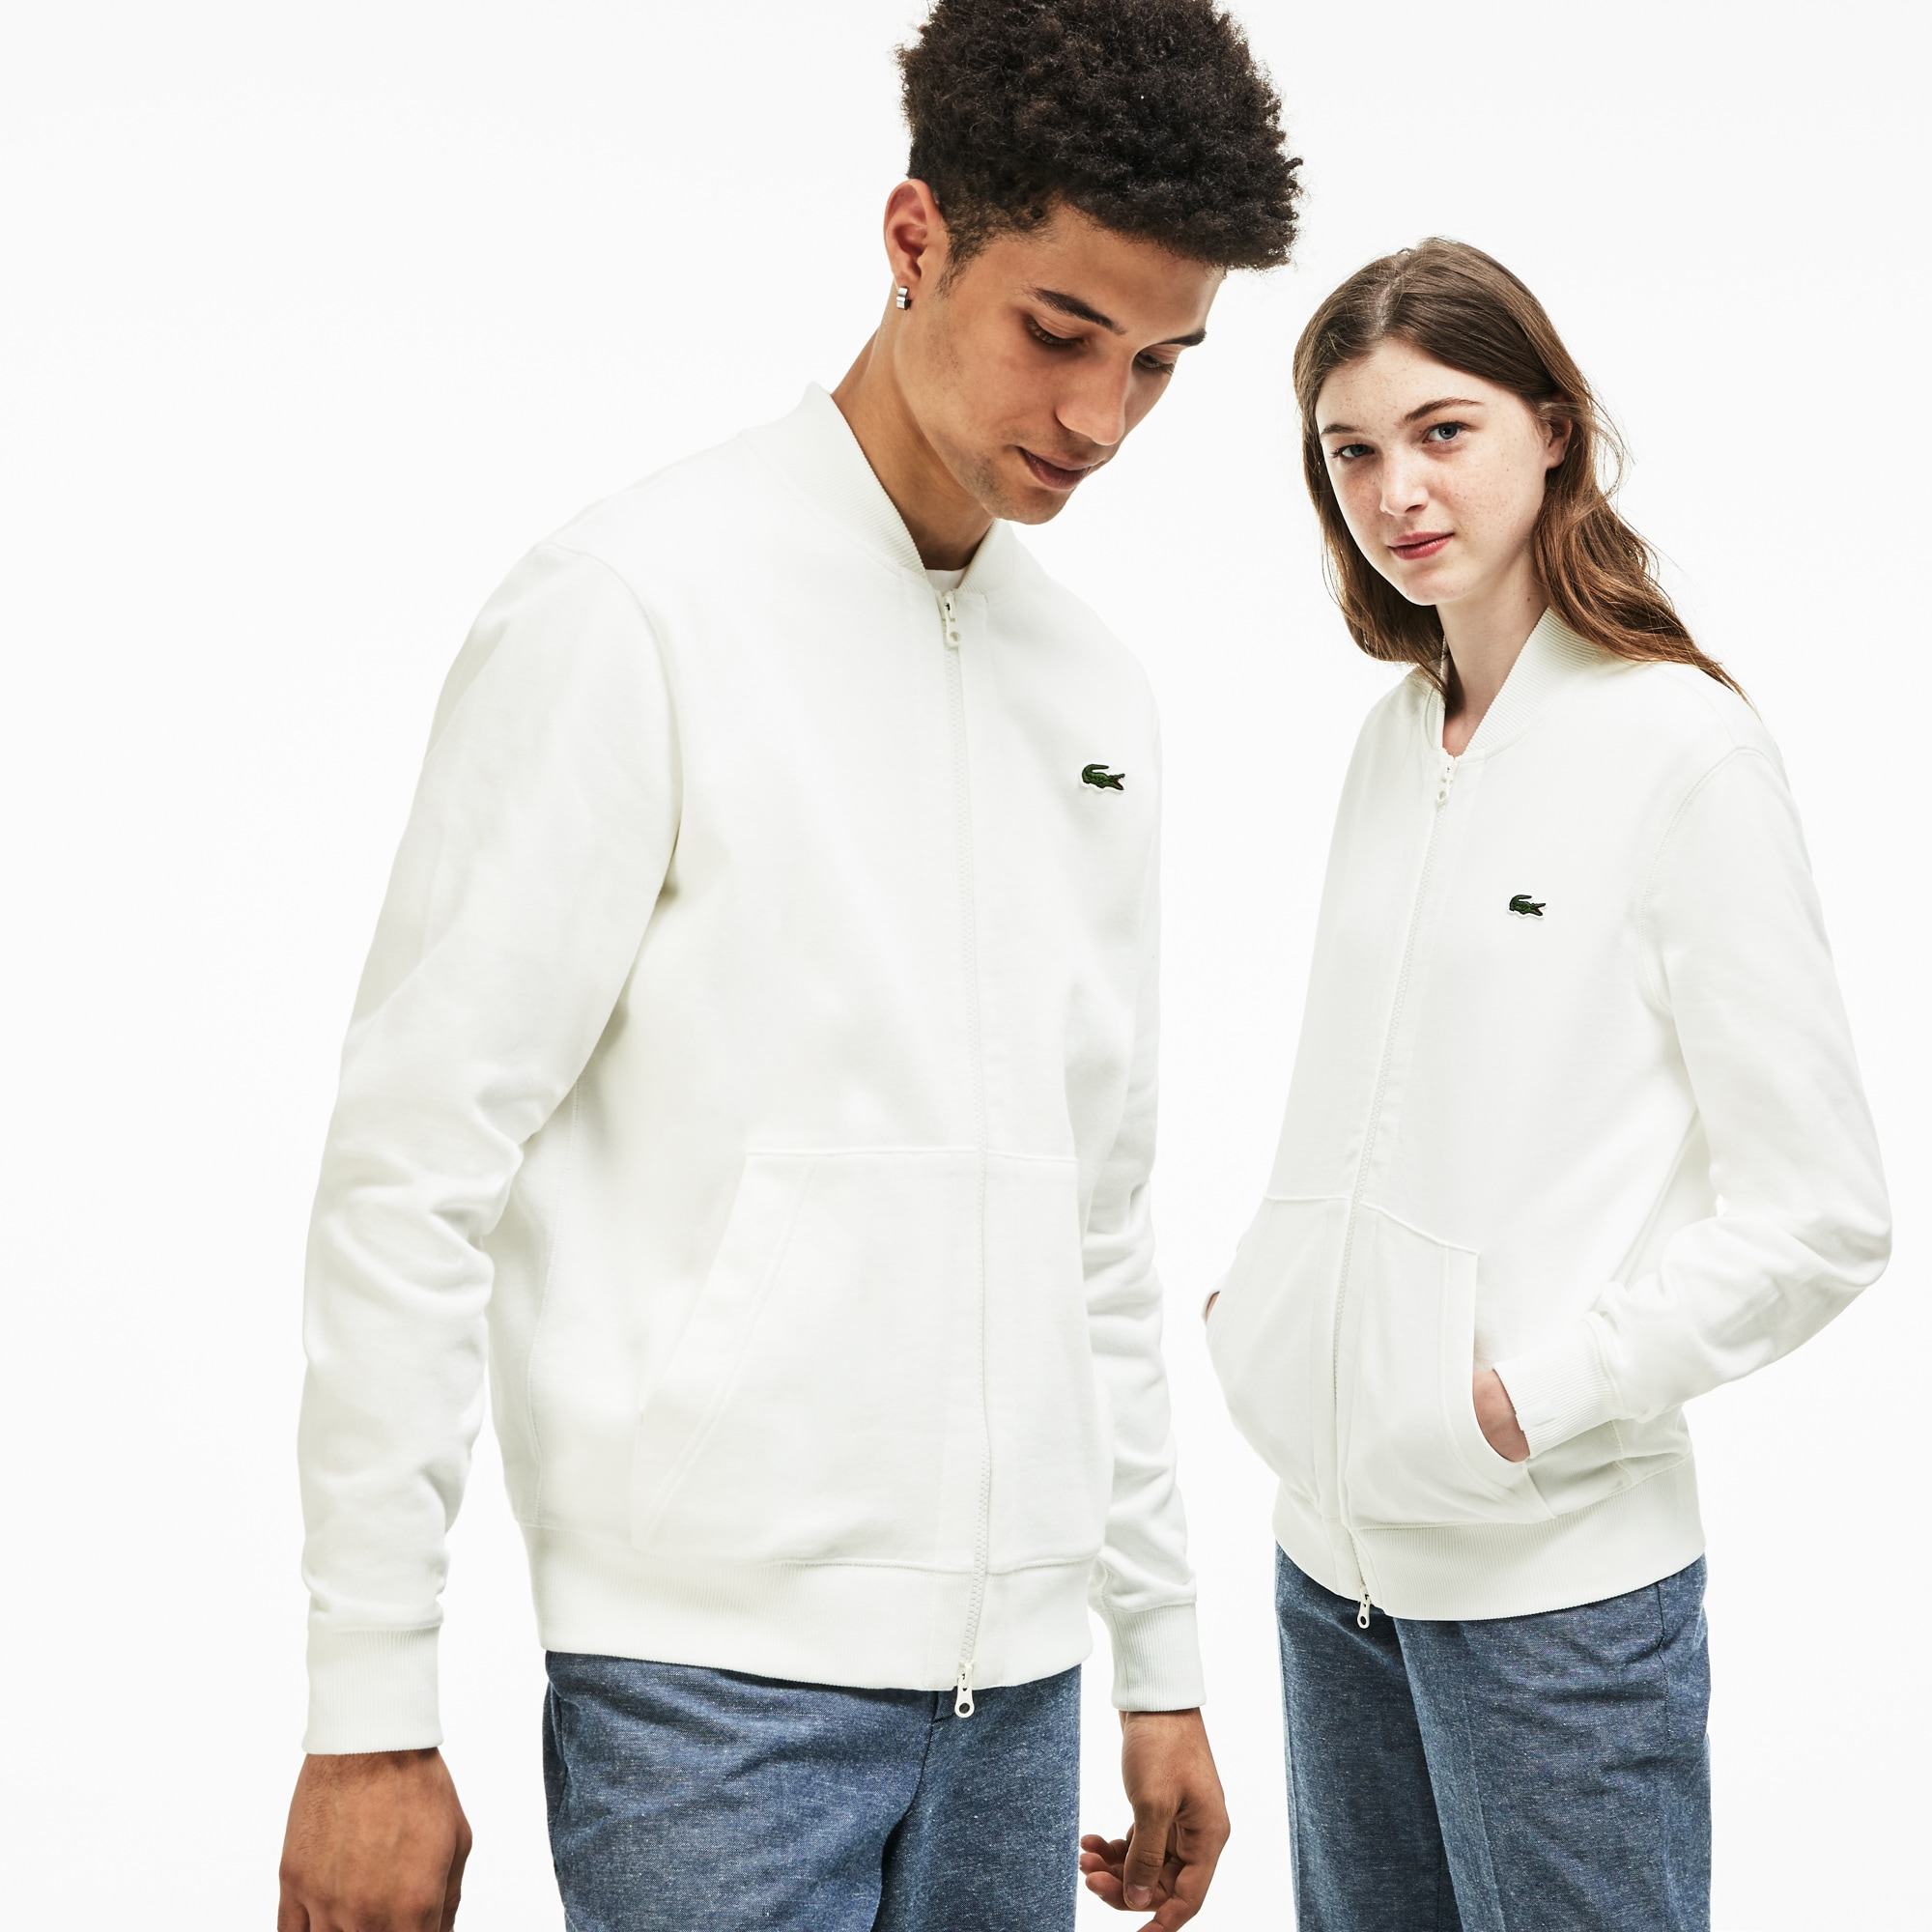 Unisex Lacoste LIVE Zip Bomber Neck Fleece Sweatshirt